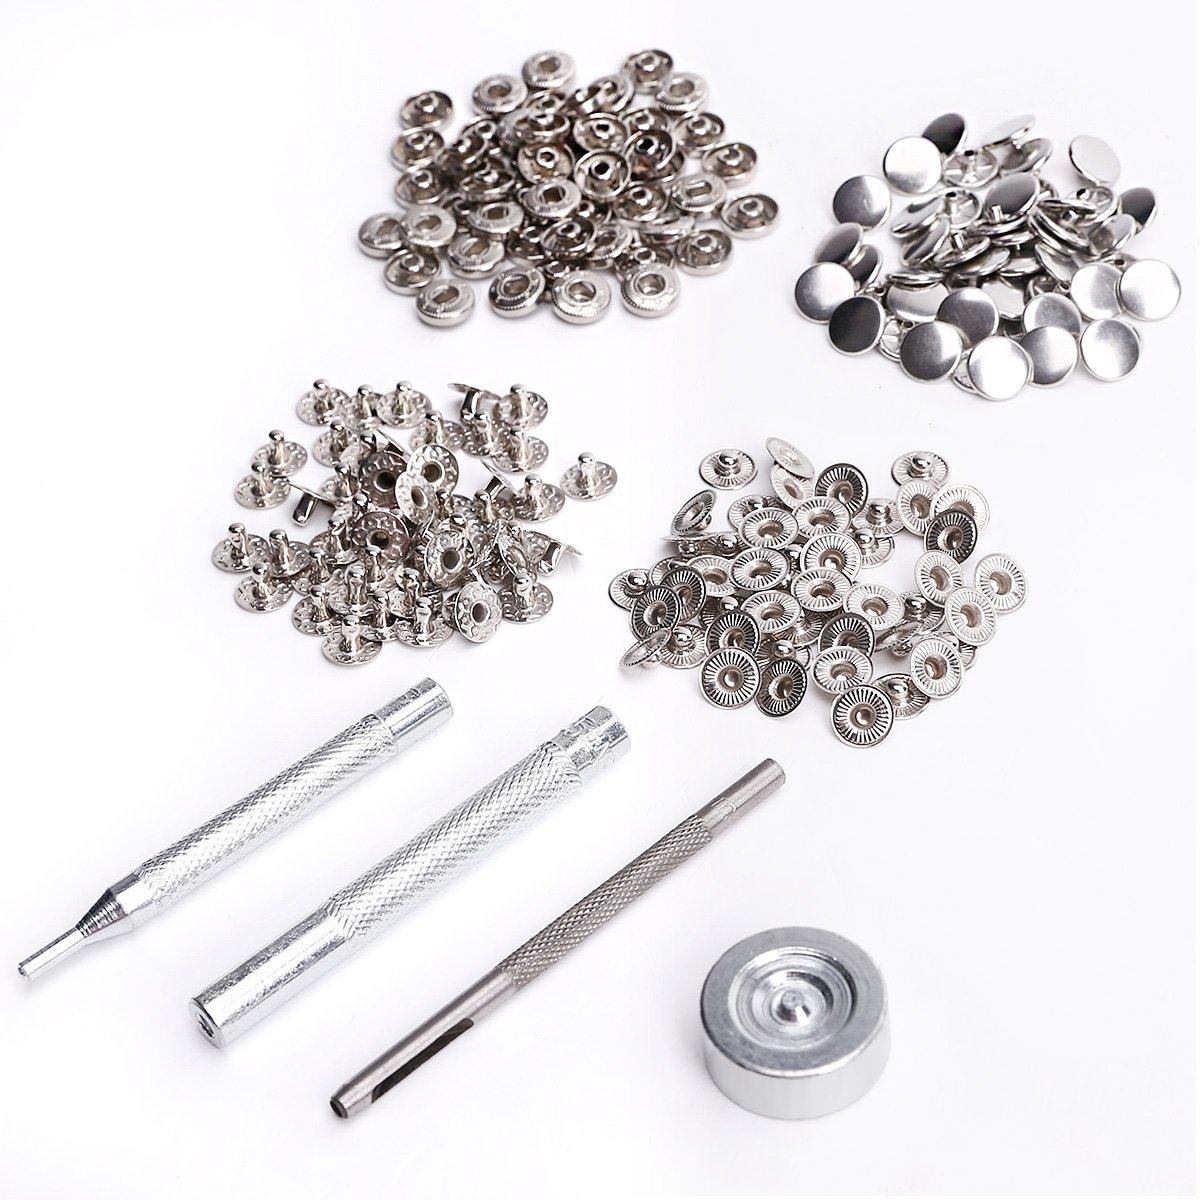 Metal Poppers Snap Clasp Fasteners Press Stud Kit Leather Craft Jacket Button